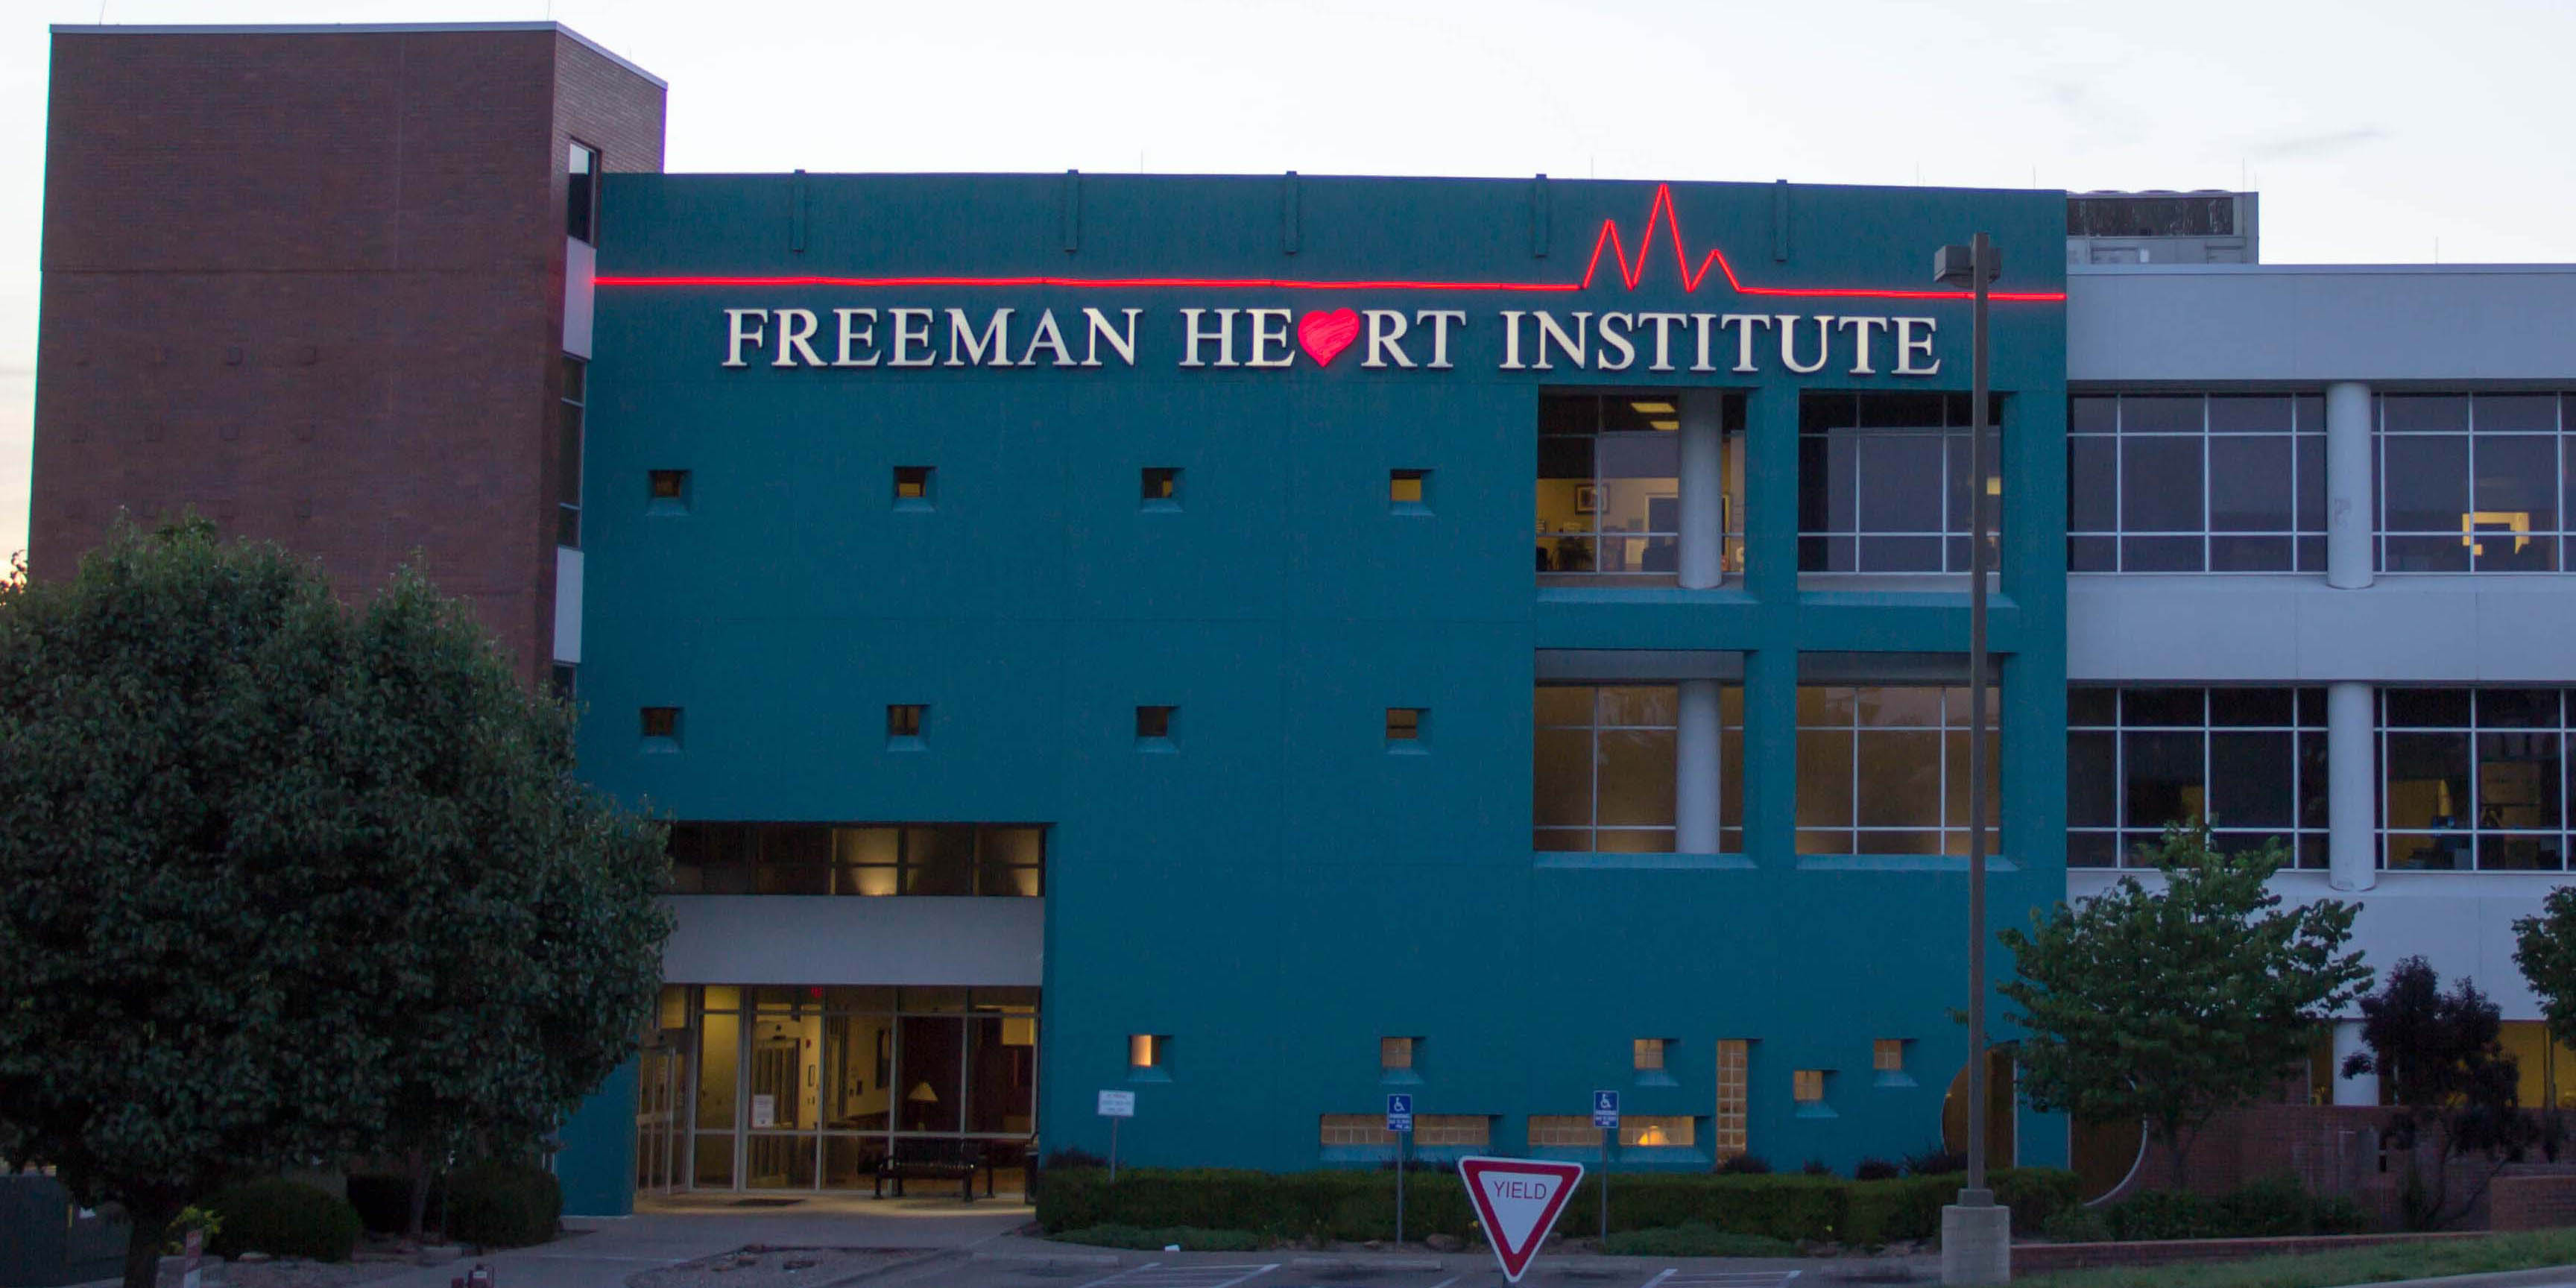 Freeman Heart & Vascular Institute cropped